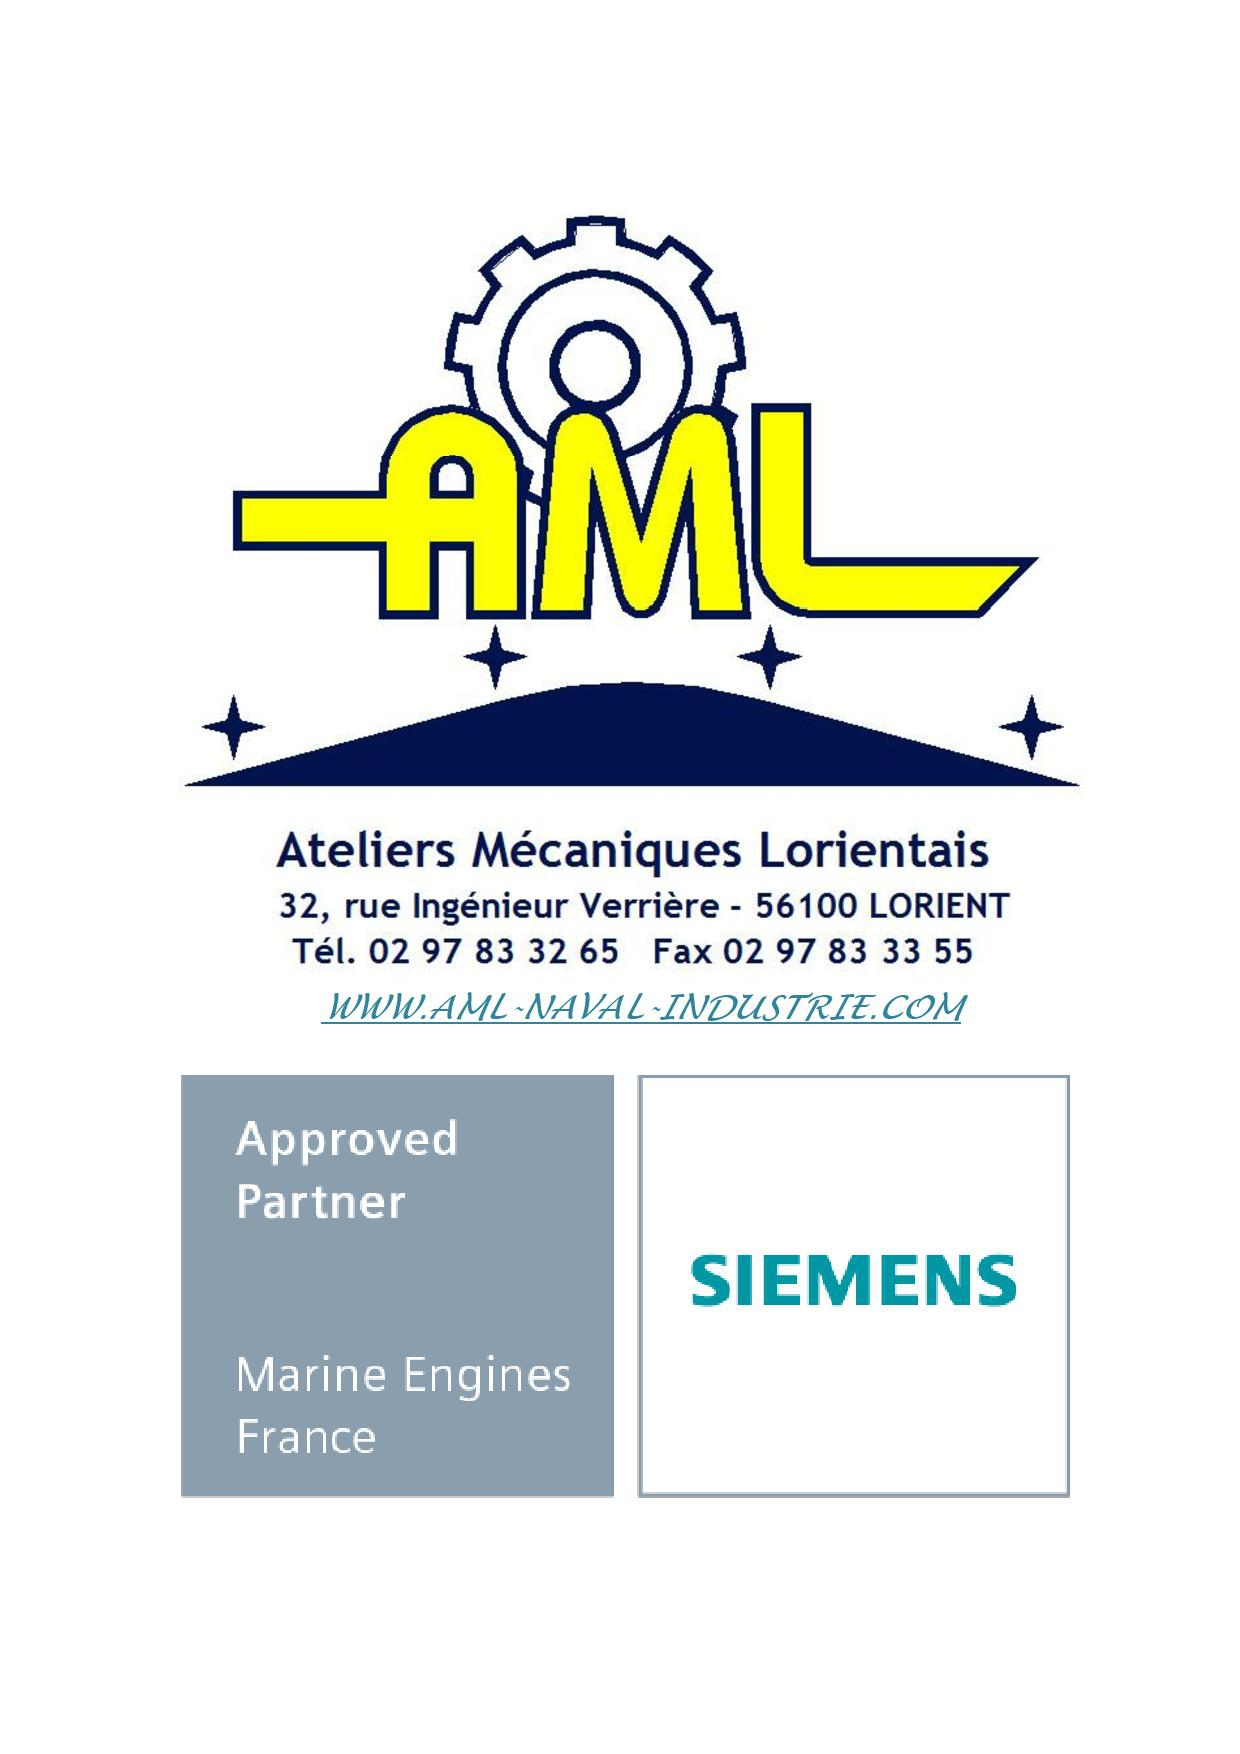 AML SIEMENS Approved Partner Marine Engines France